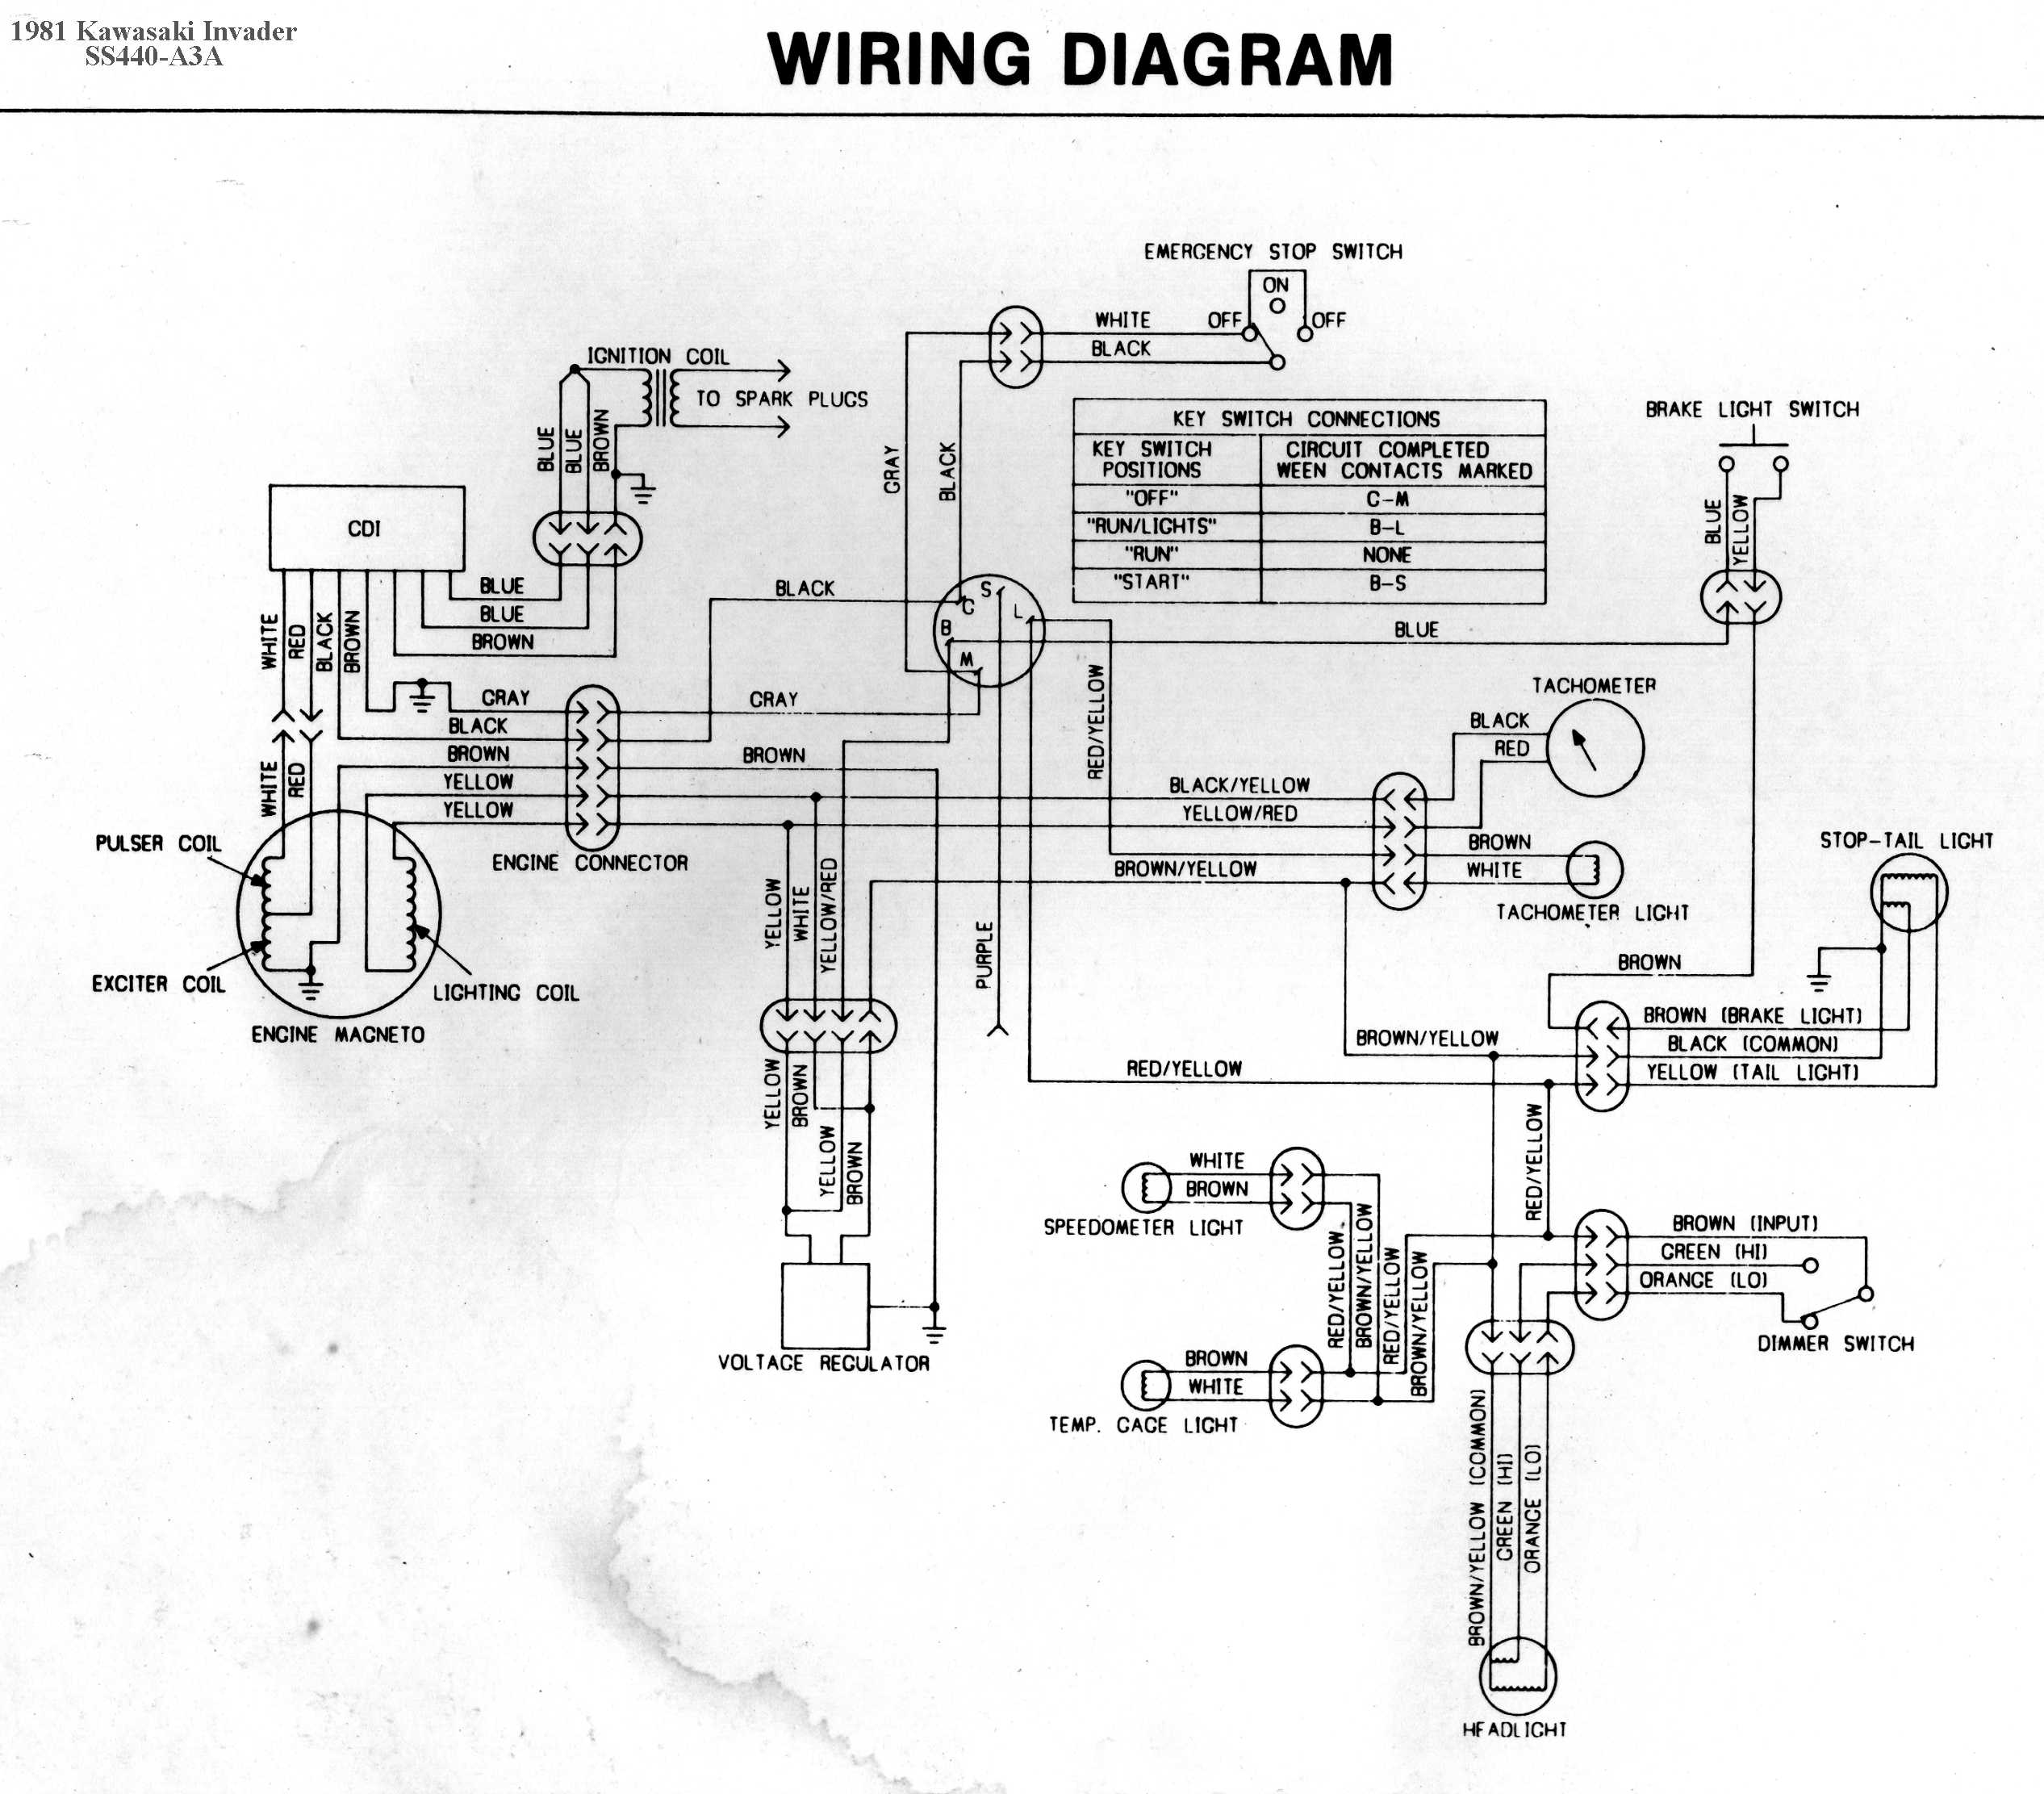 ss440a3a kawasaki invader snowmobile wiring diagrams 1980 kawasaki 440 ltd wiring diagram at bayanpartner.co